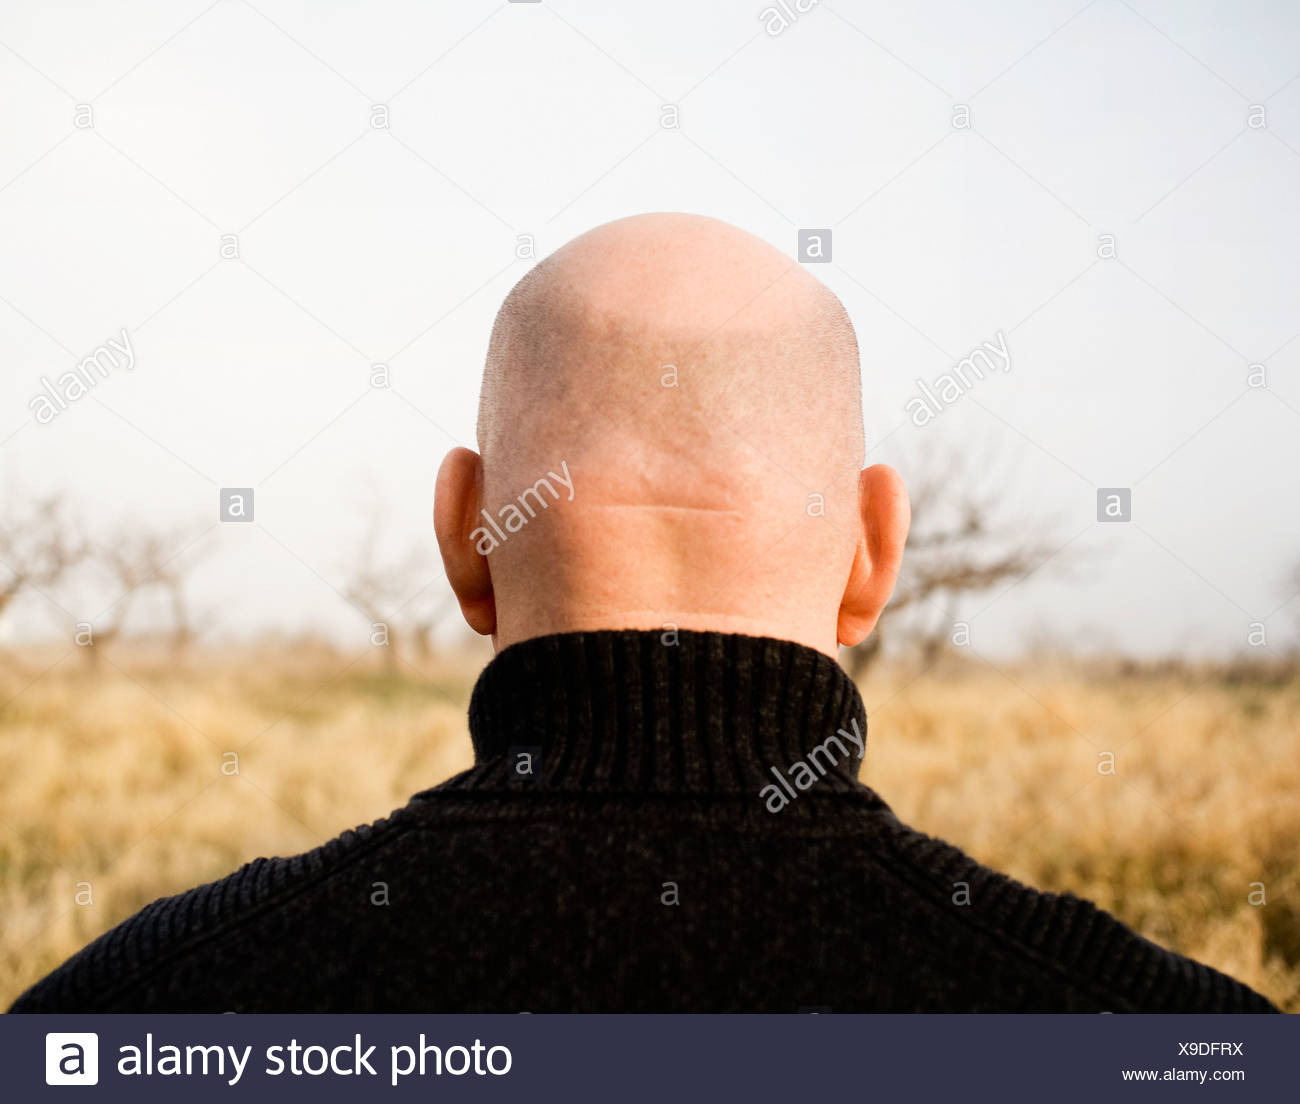 Close-up of a bald head, Sweden. - Stock Image